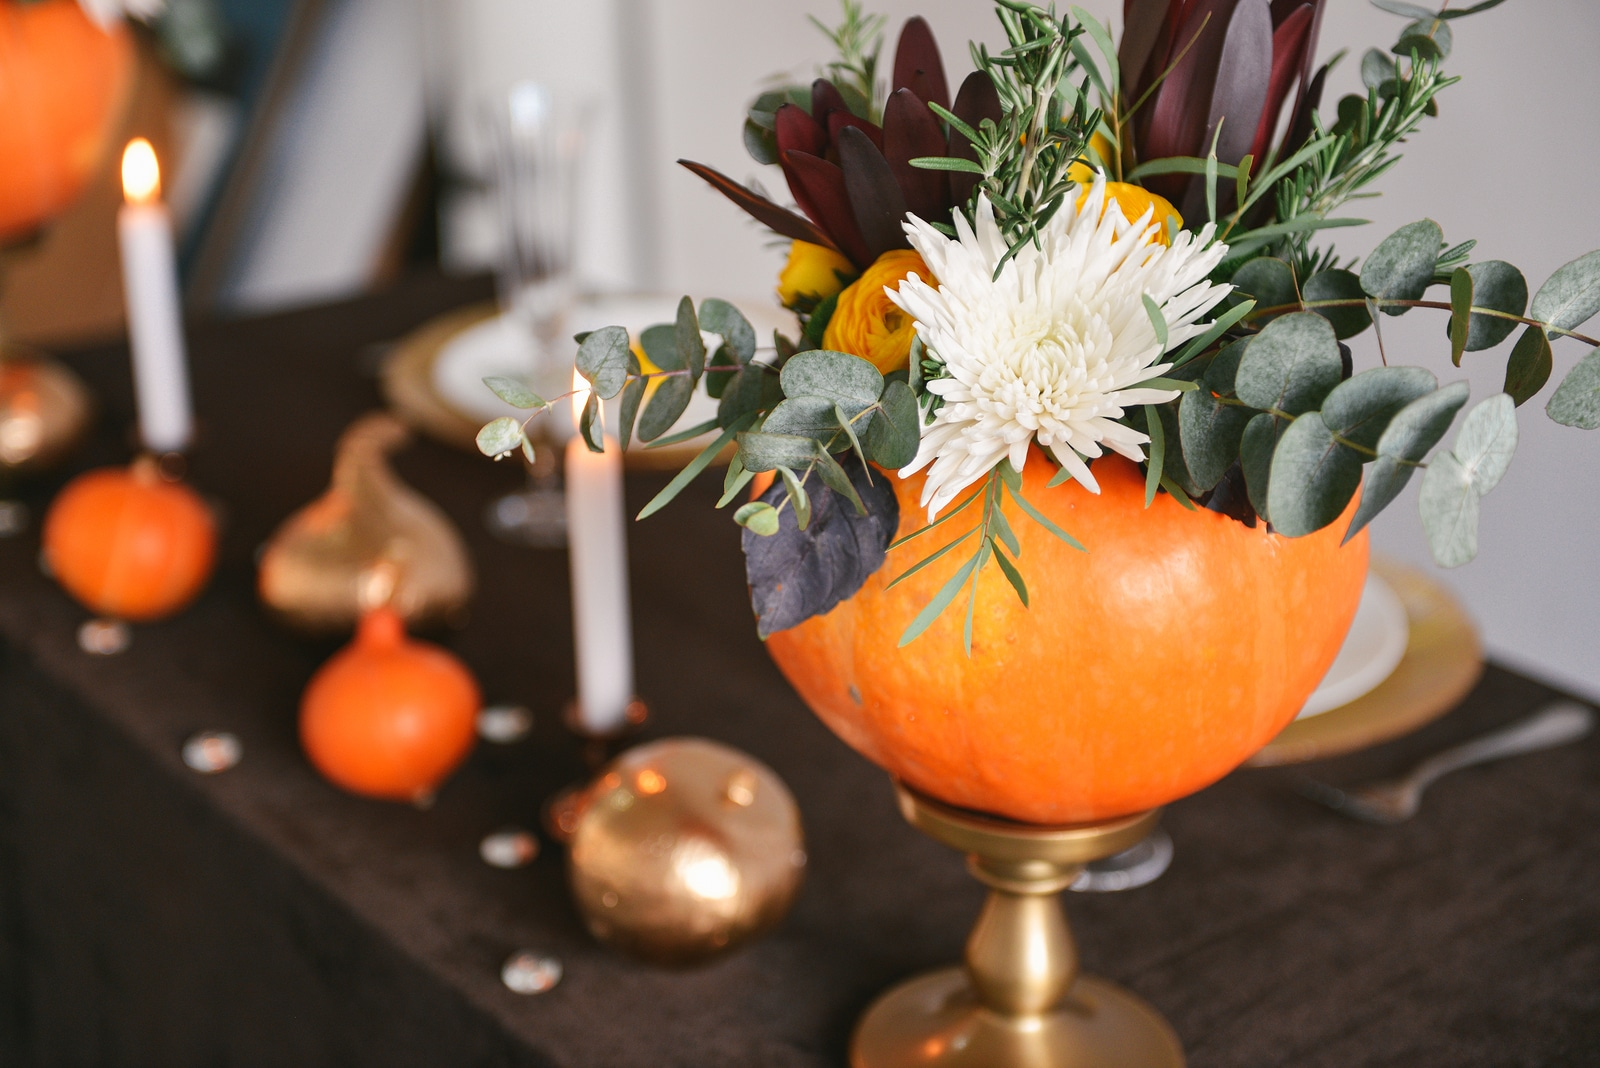 Wedding catering raleigh nc spicing up fall wedding decor with pu how pumpkins can spice up your fall wedding decor junglespirit Images